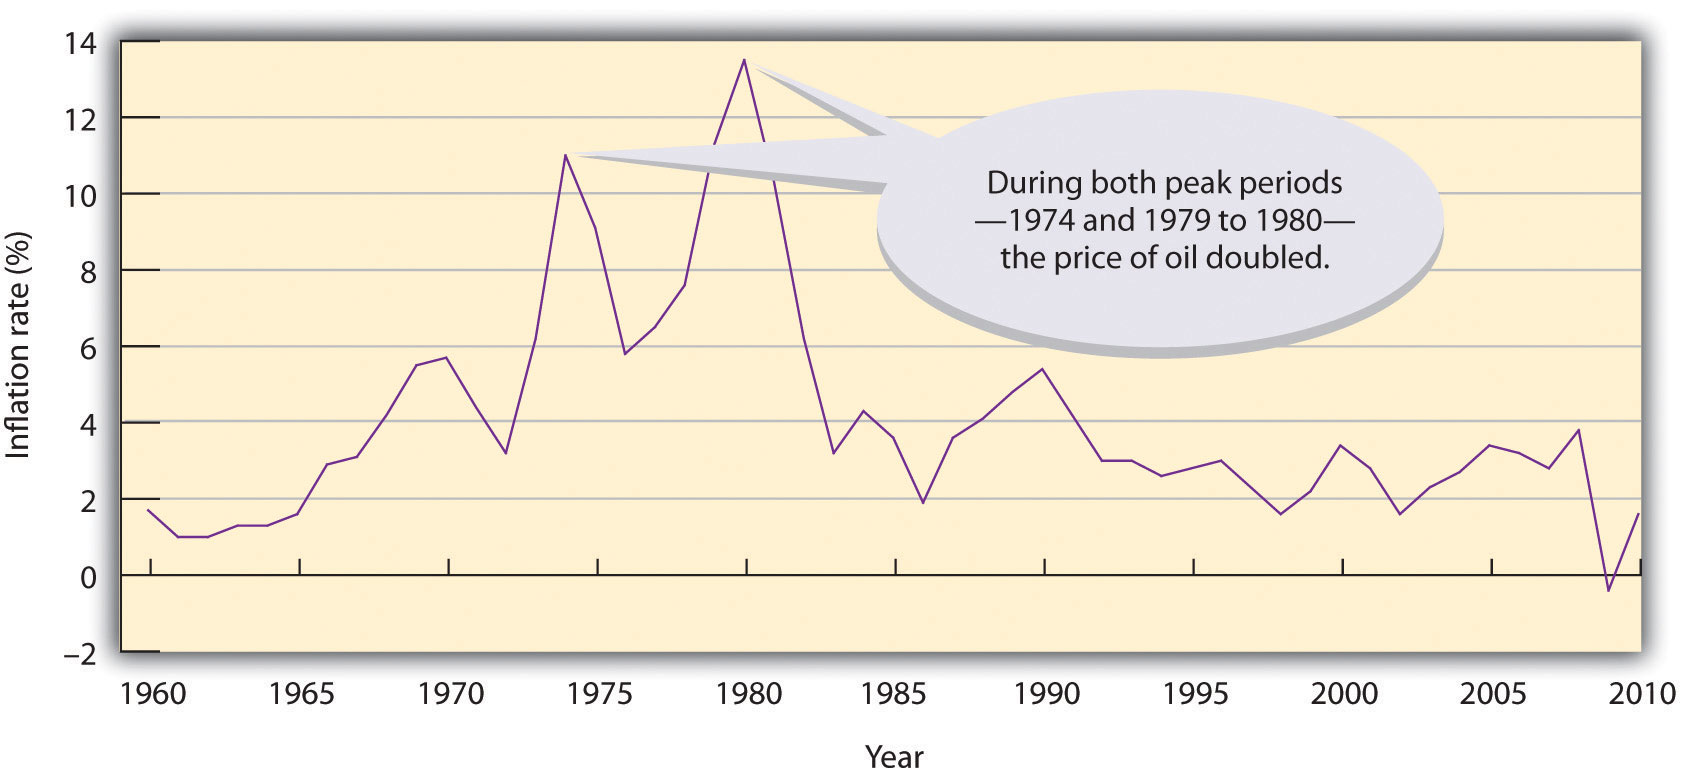 The U.S. Inflation Rate, 1960-2010